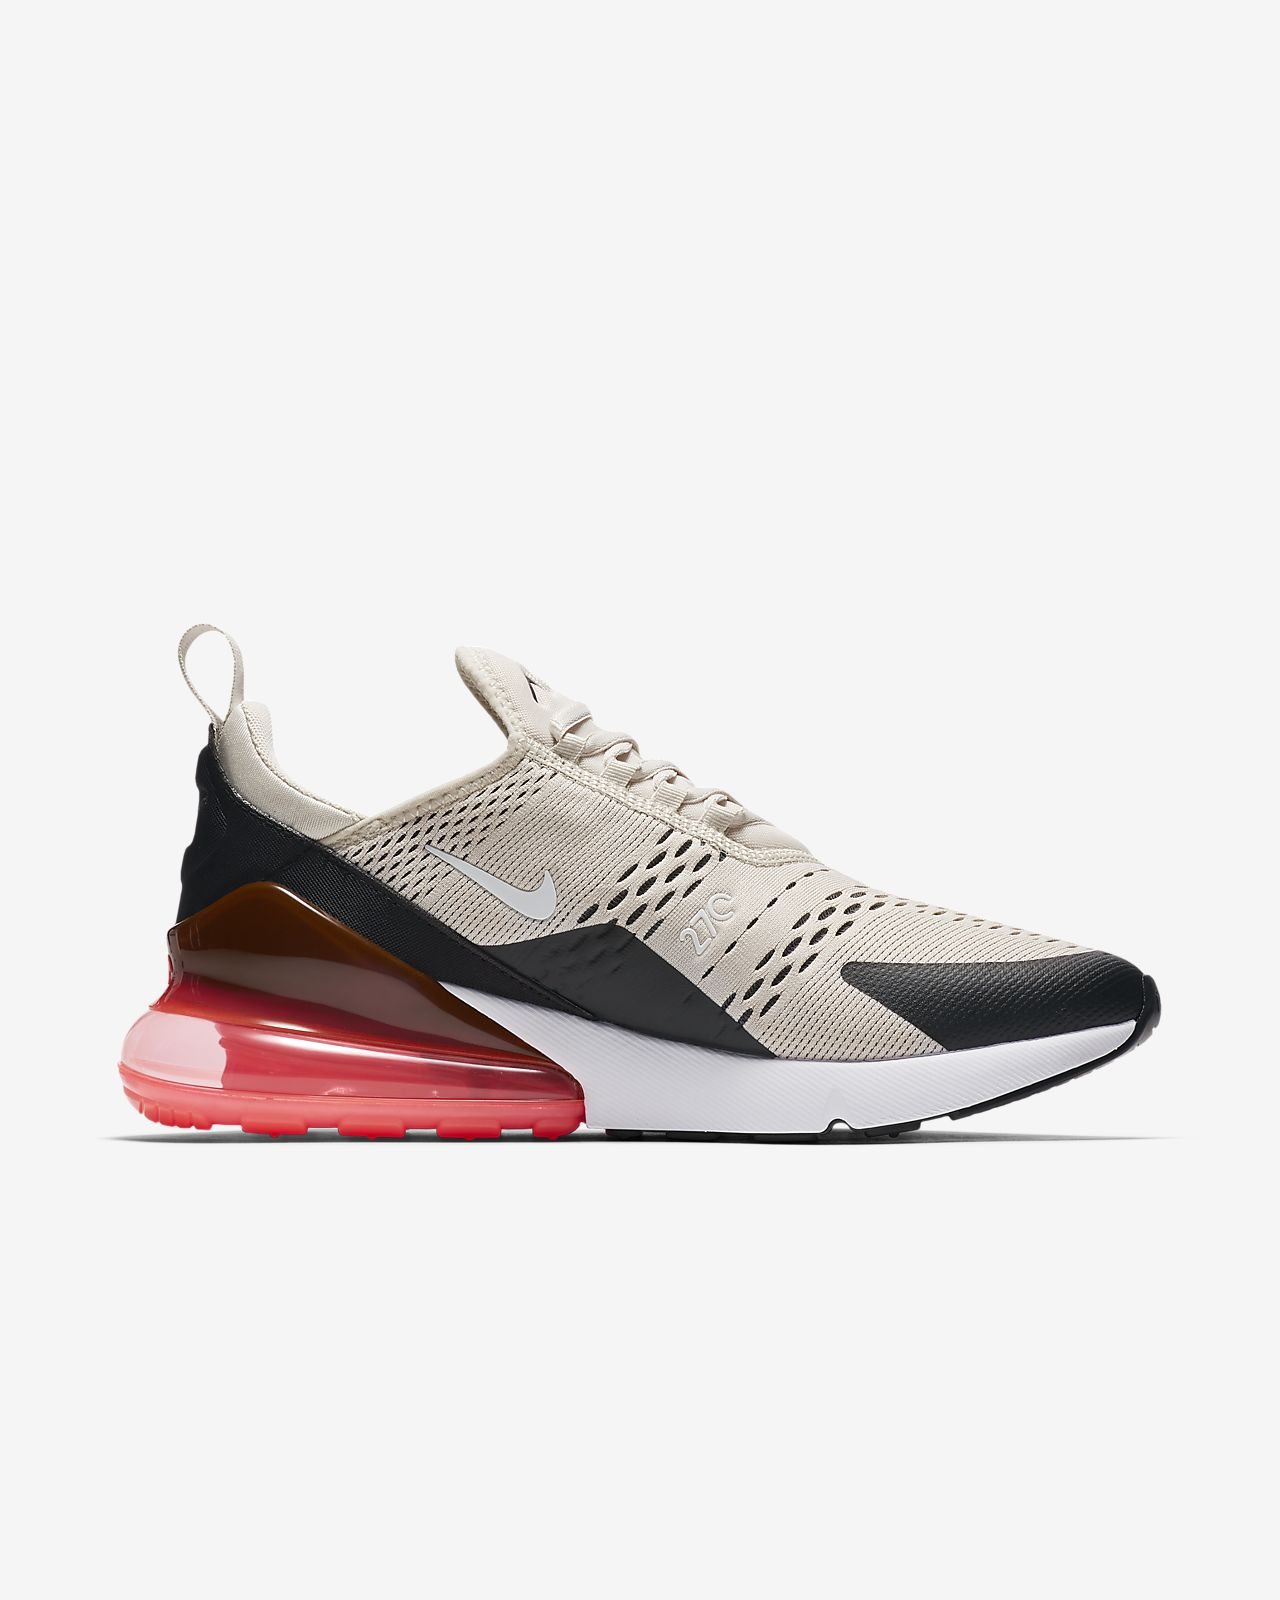 lowest price f1e8b a3813 ... Nike Air Max 270 Men s Shoe